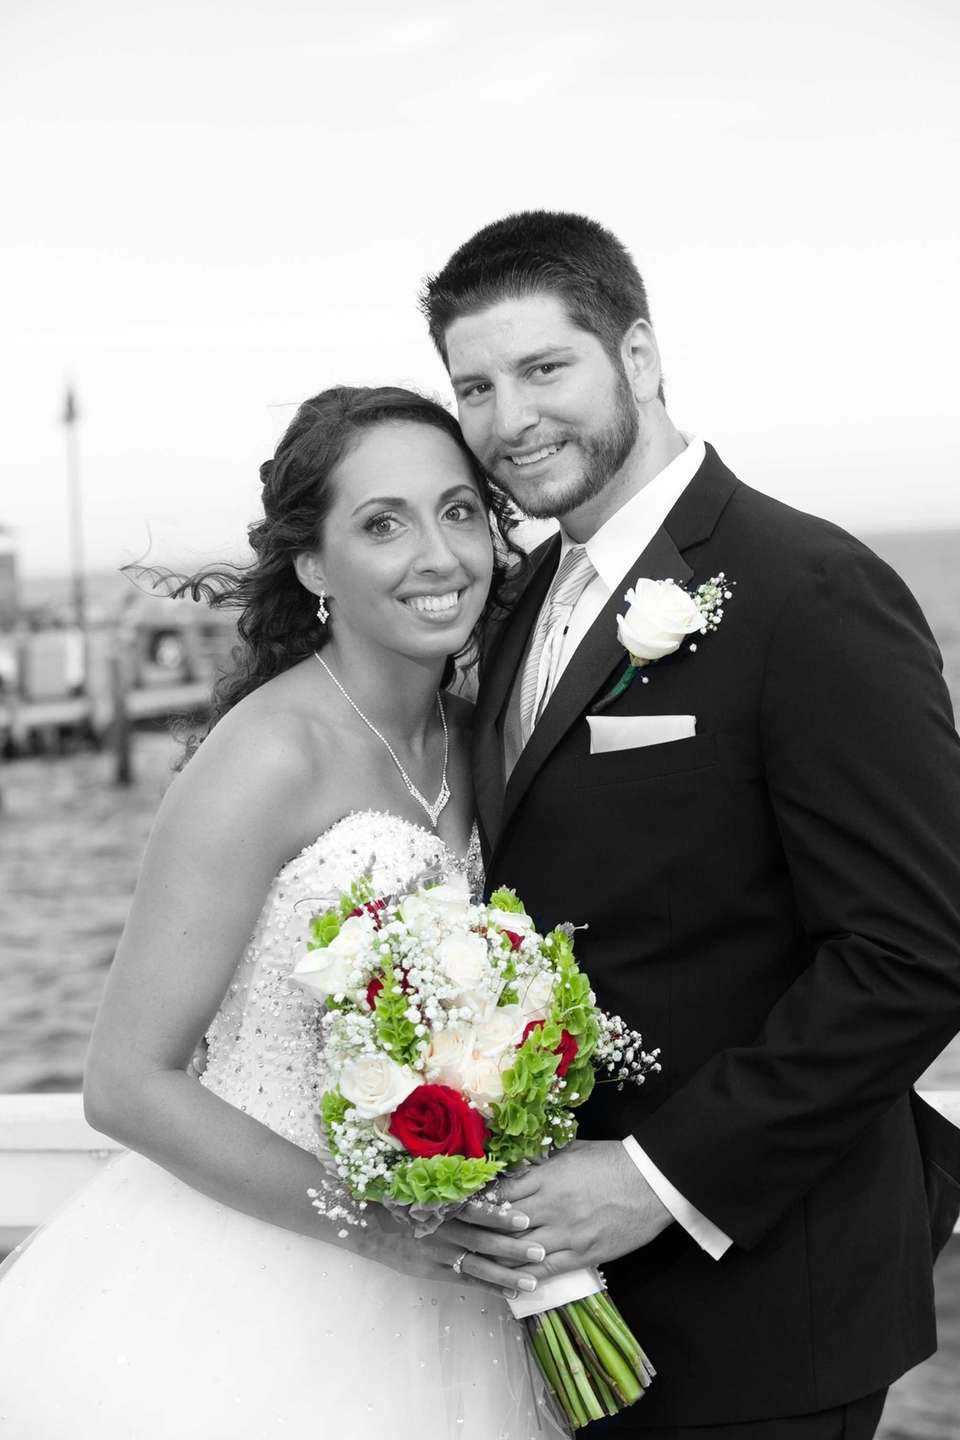 This beautiful picture is from Angela and Jason